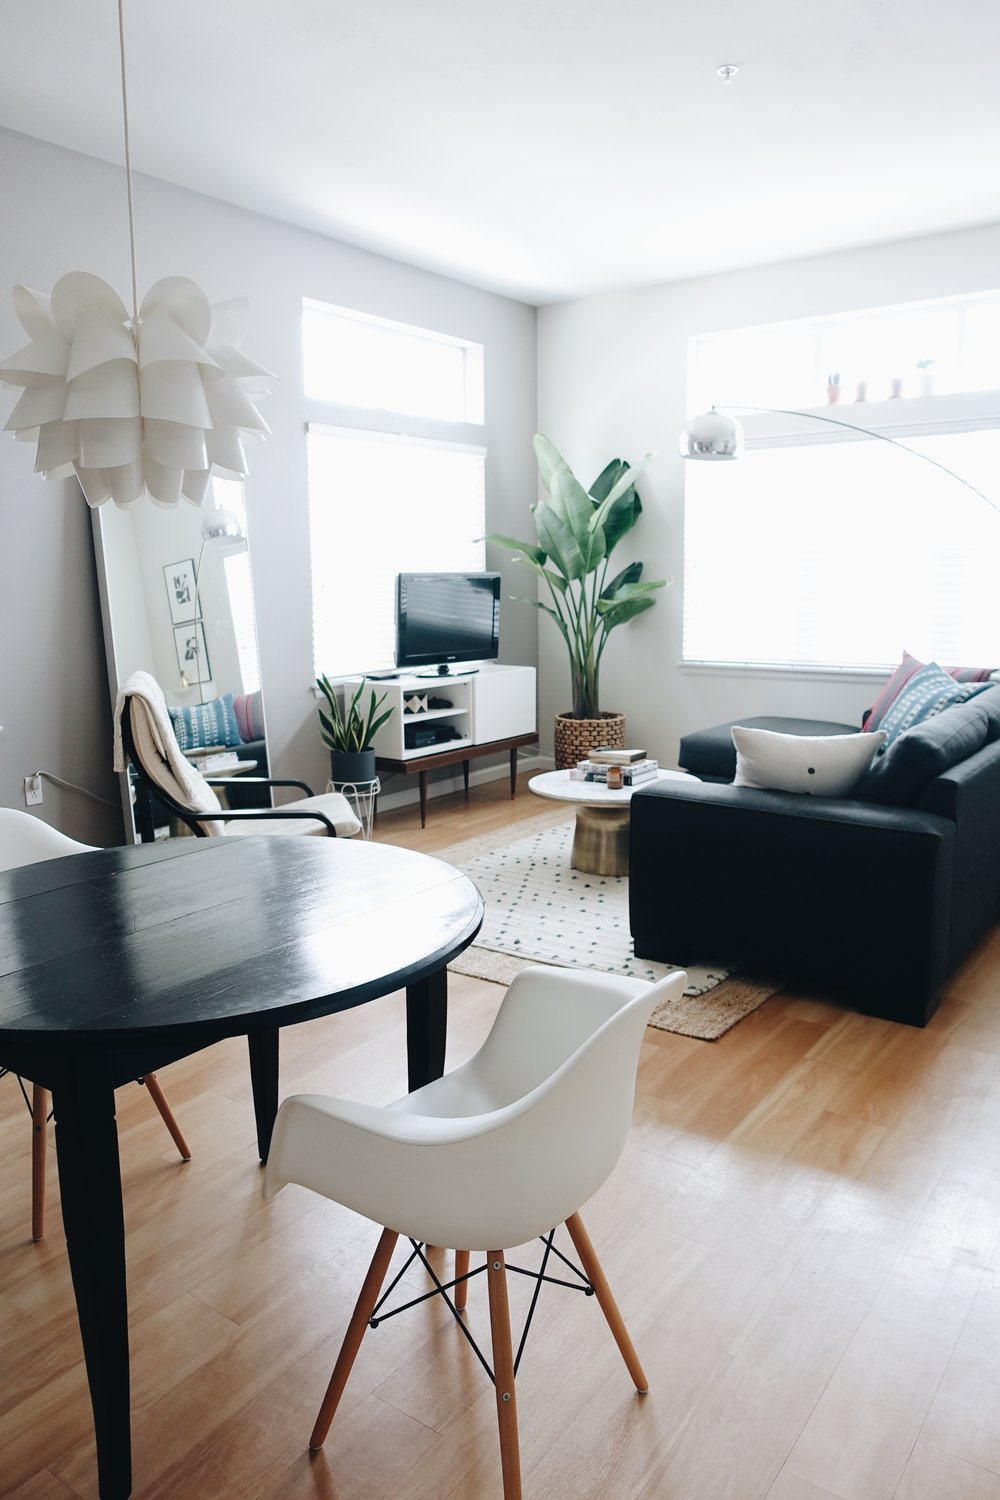 Scope: Minimal Design Concept For A Small Living And Dining Area. Scope  Included Using Some Of Clientu0027s Existing Furniture And Decor Items And  Selecting Key ...